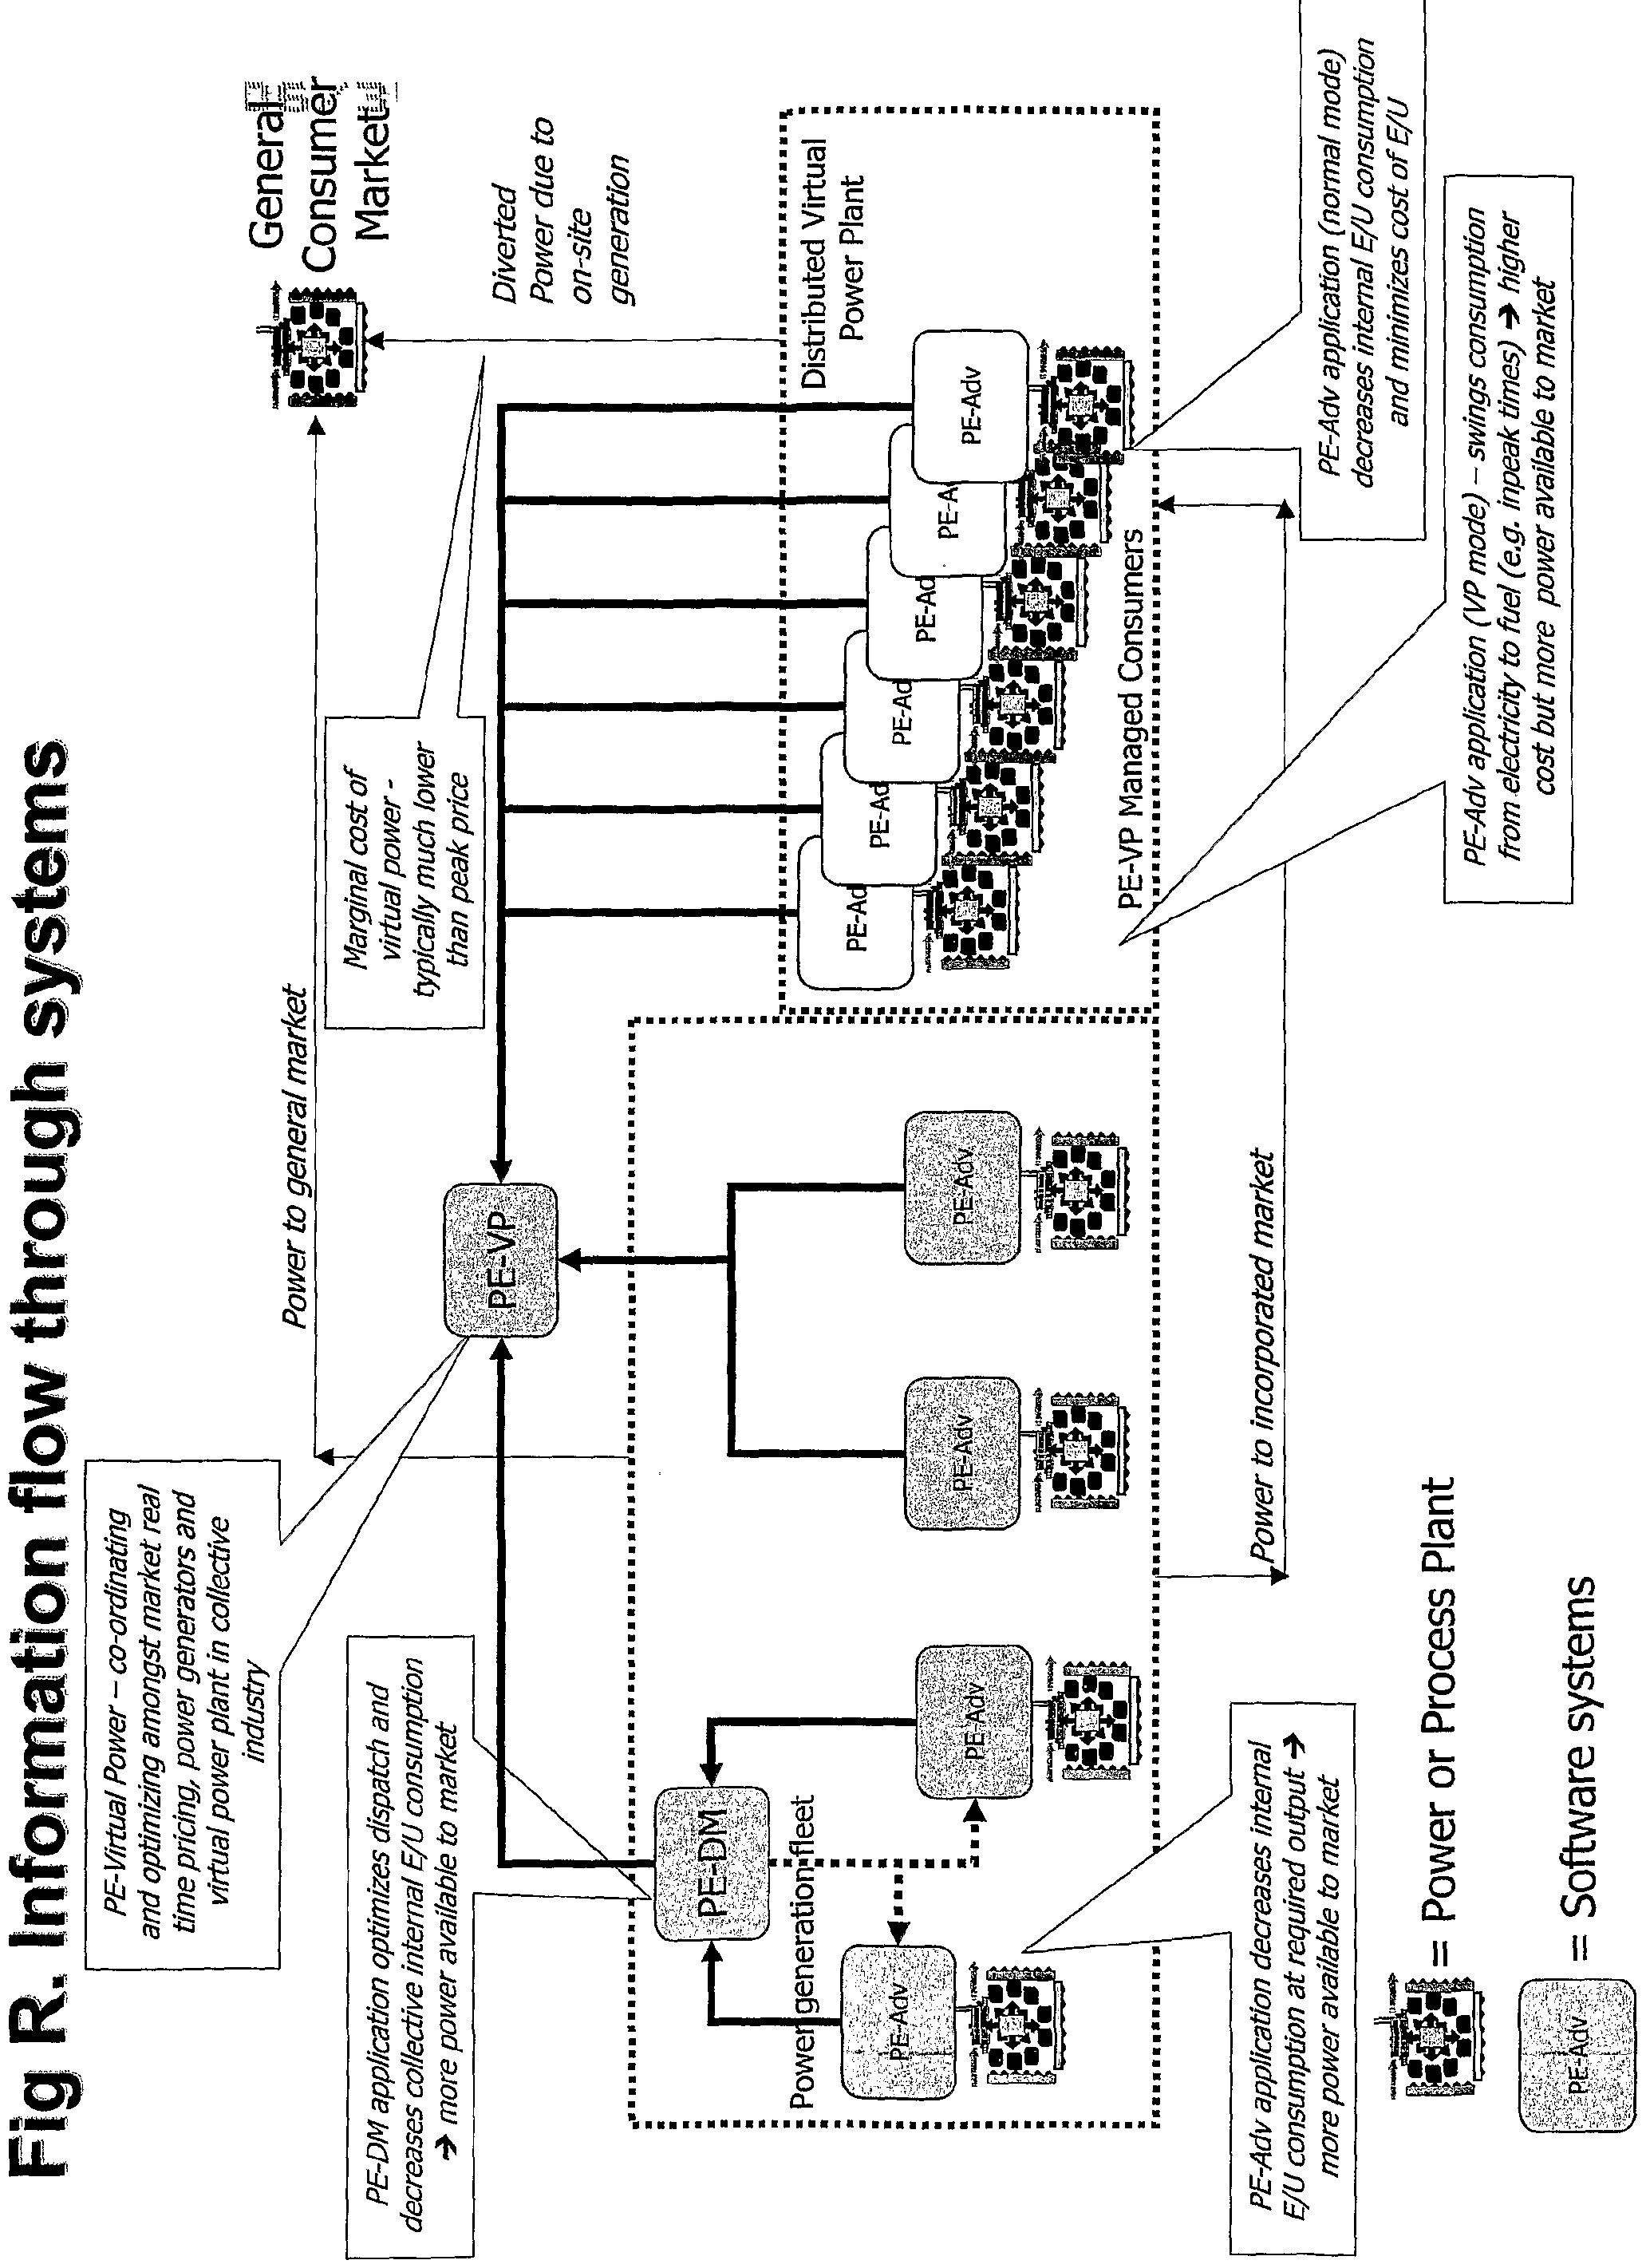 Wo2007028158a2 Energy And Chemical Species Utility Management Captive Power Plant Flow Diagram Figure Imgf000042 0001